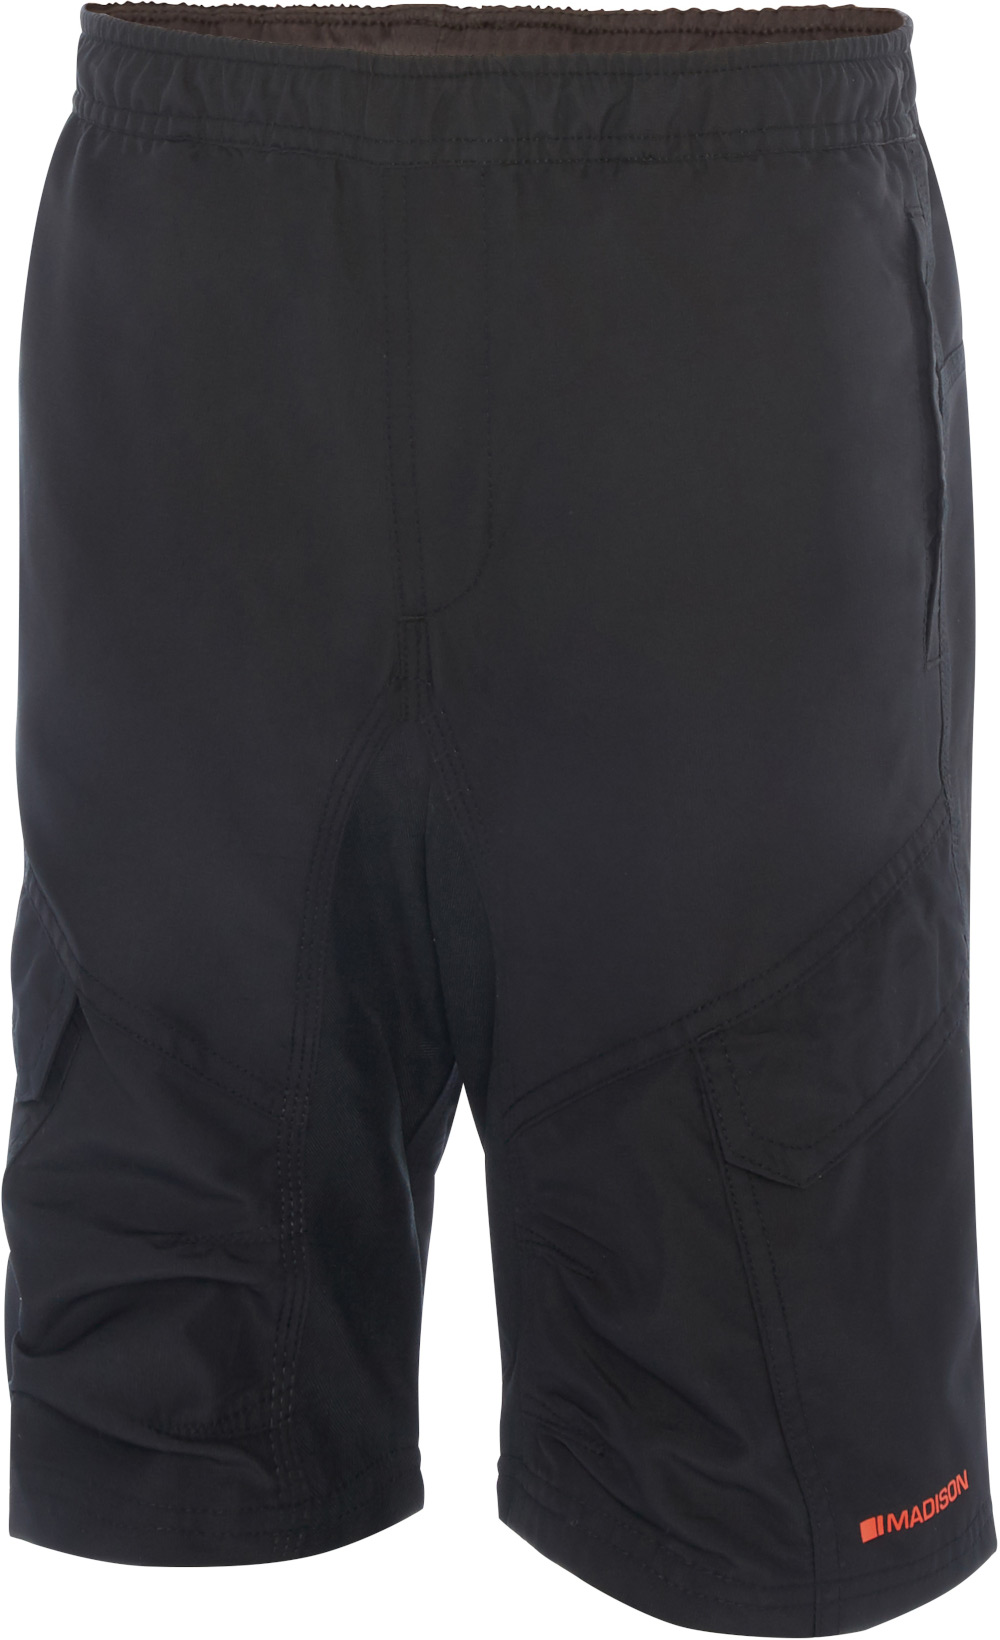 Madison Trail Youth Shorts Black